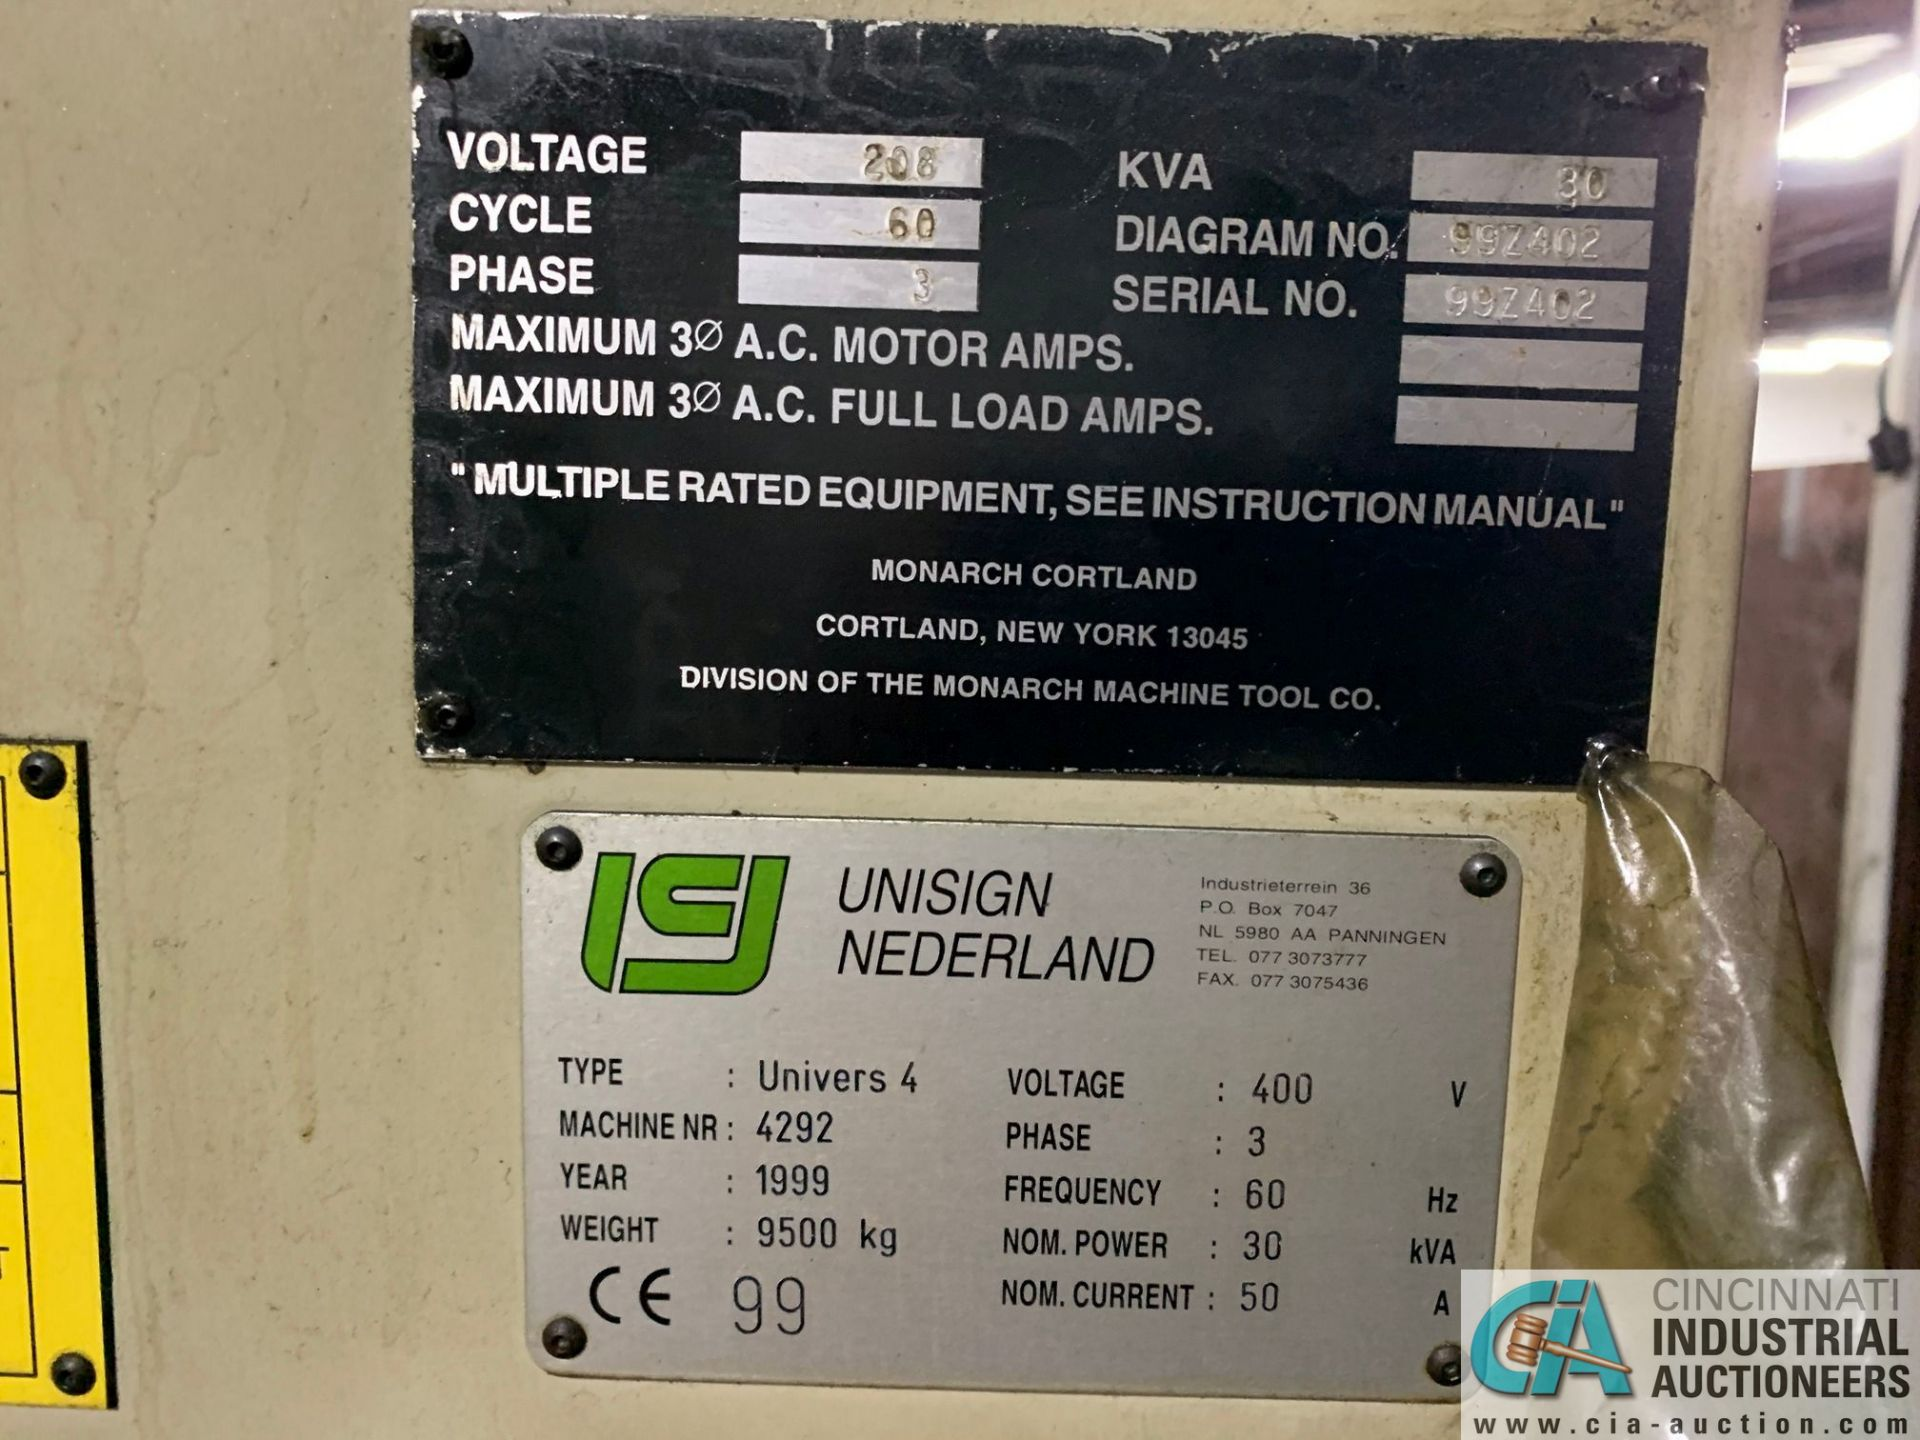 MONARCH UNISIGN TYPE UNIVERS 4 ZONALL 4 CNC VERTICAL MACHINING CENTER; S/N 99Z402, NO. 4292, - Image 6 of 11